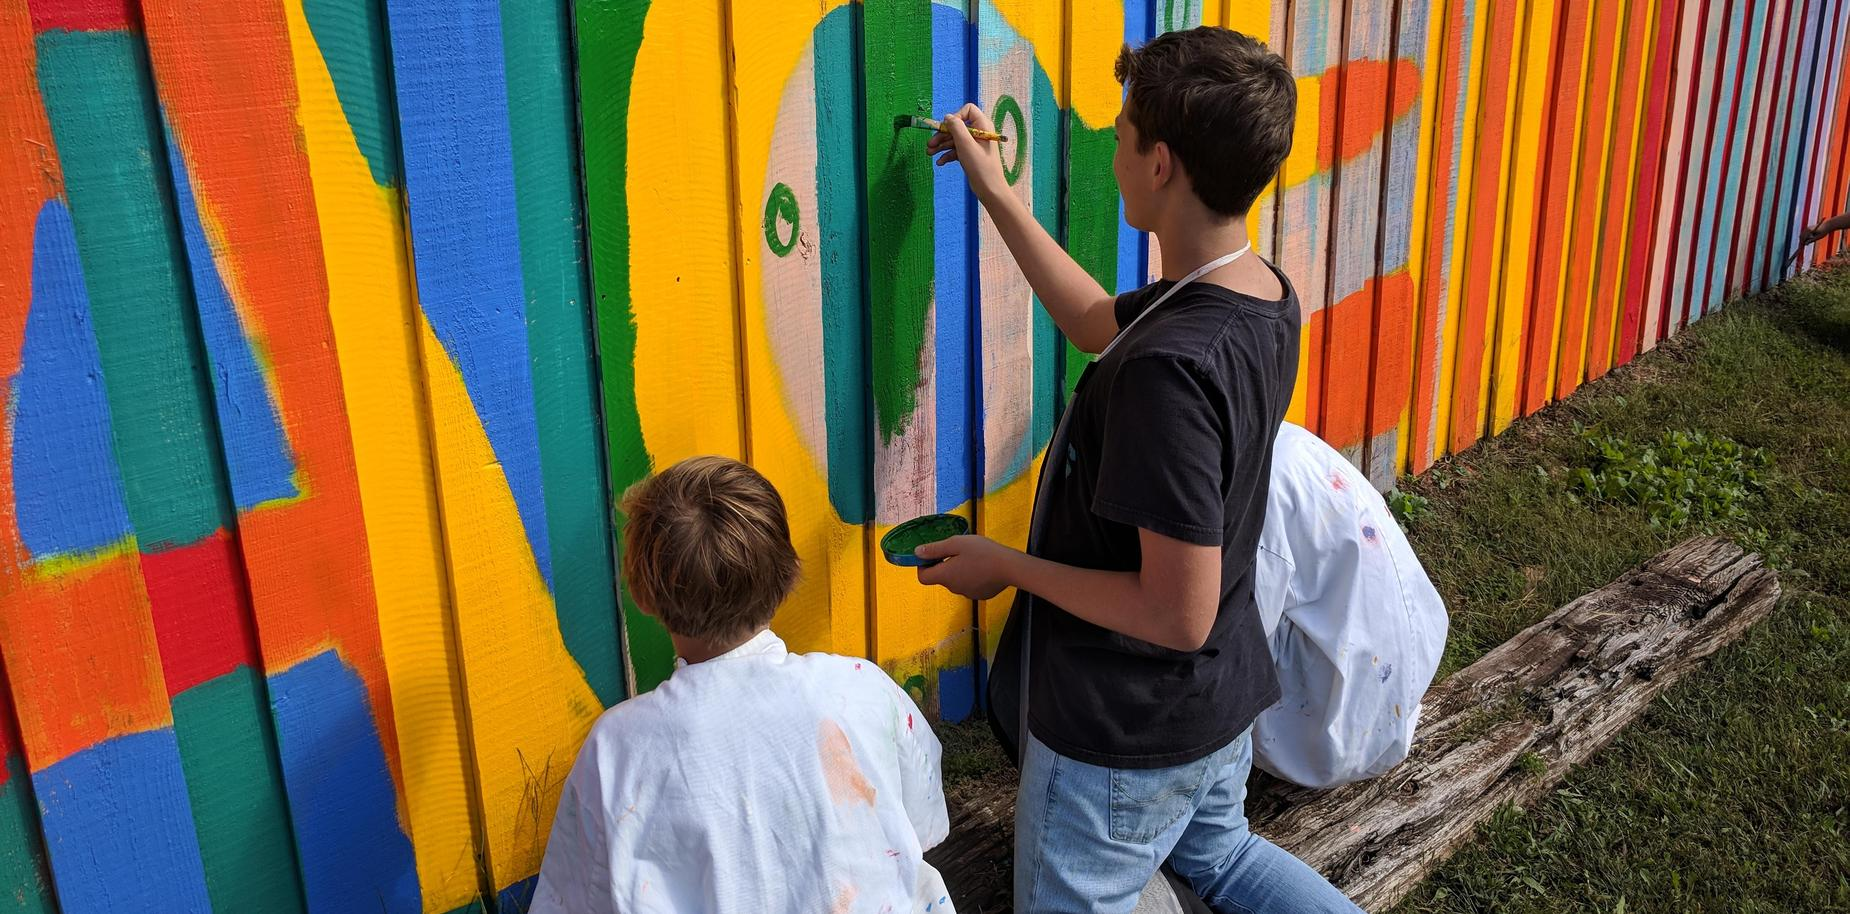 Students paint a colorful fence